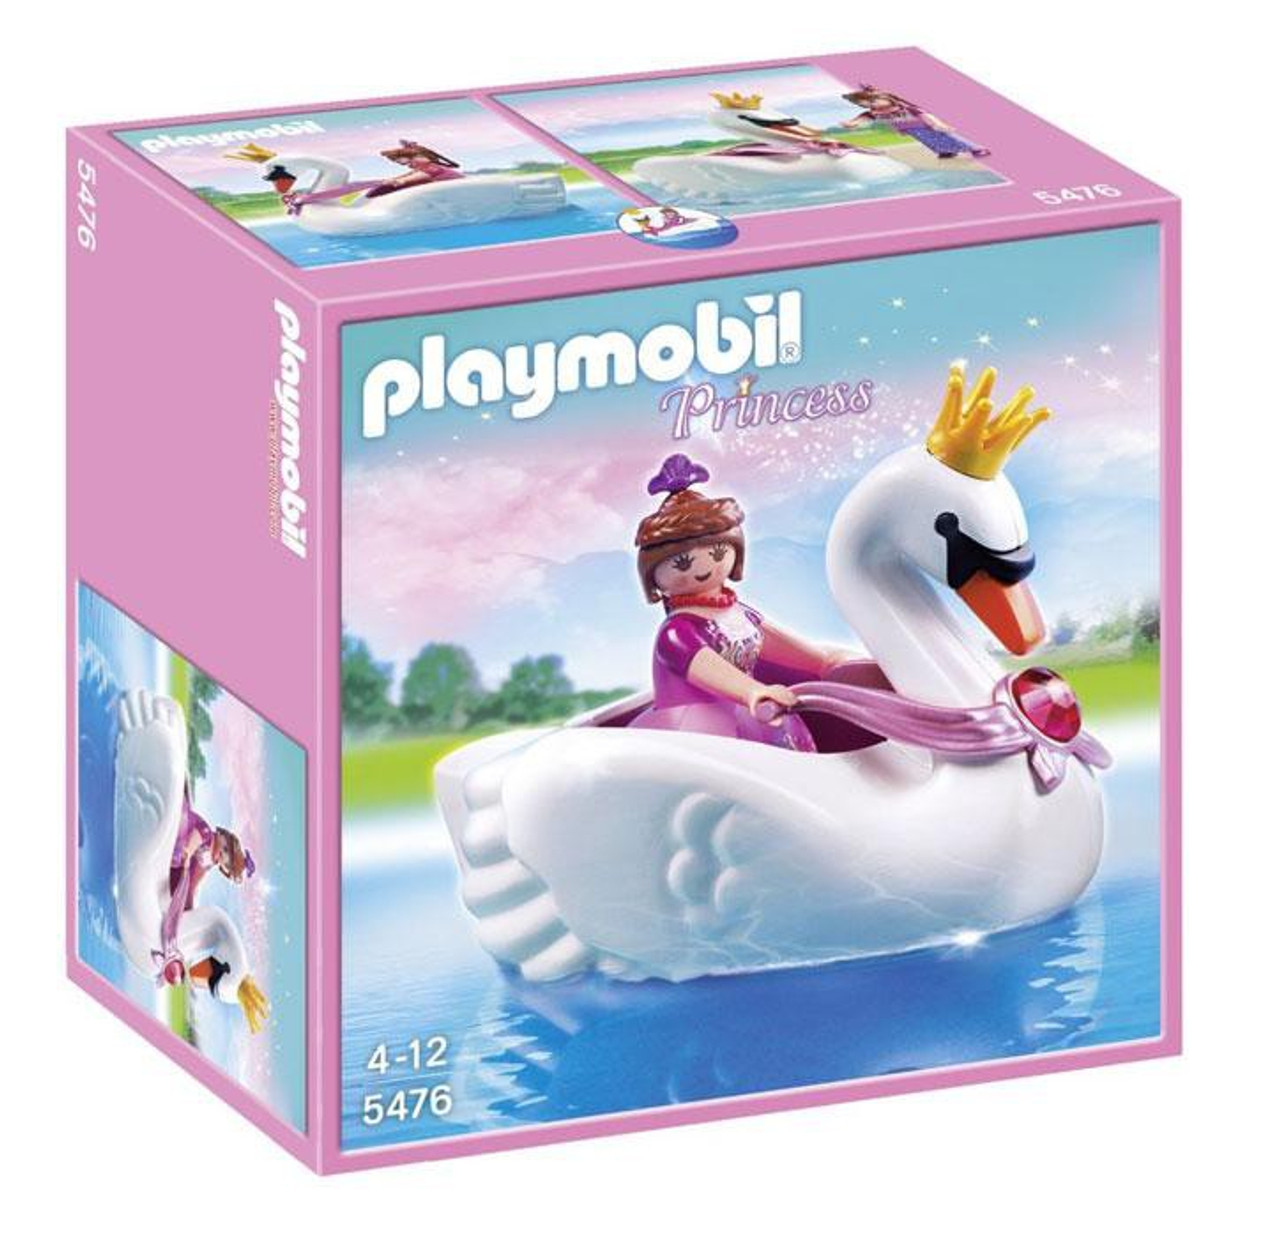 Playmobil Princess with Swan Boat Set #5476